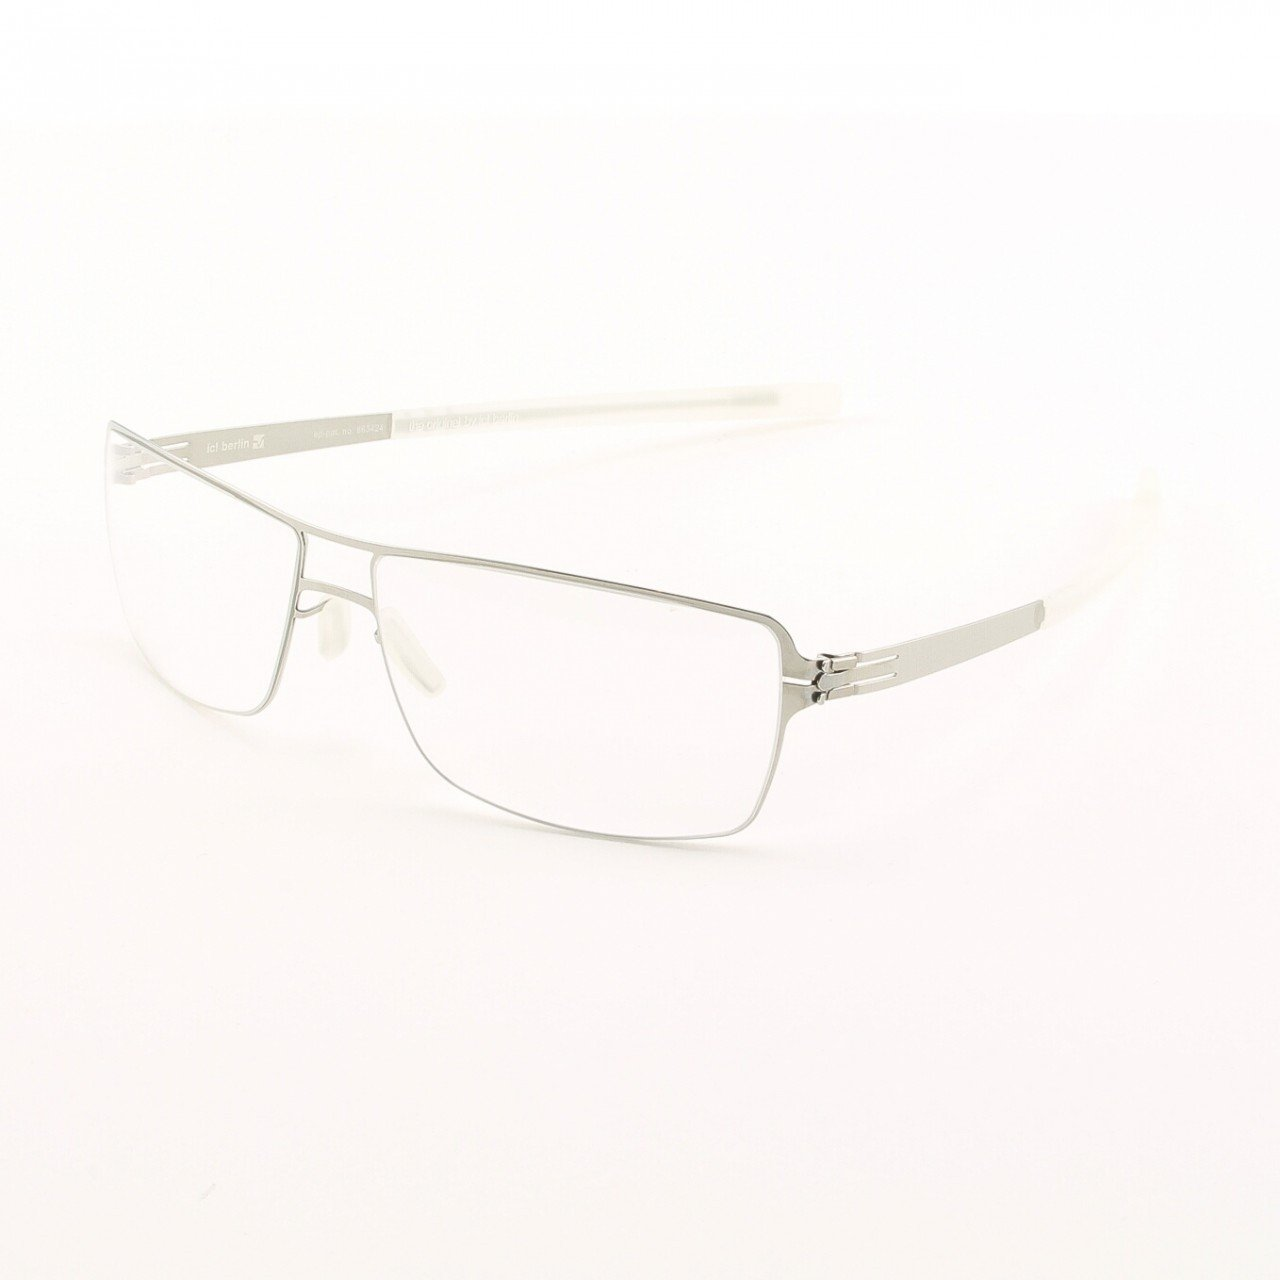 ic! Berlin Duke Eyeglasses Col. Chrome with Clear Lenses